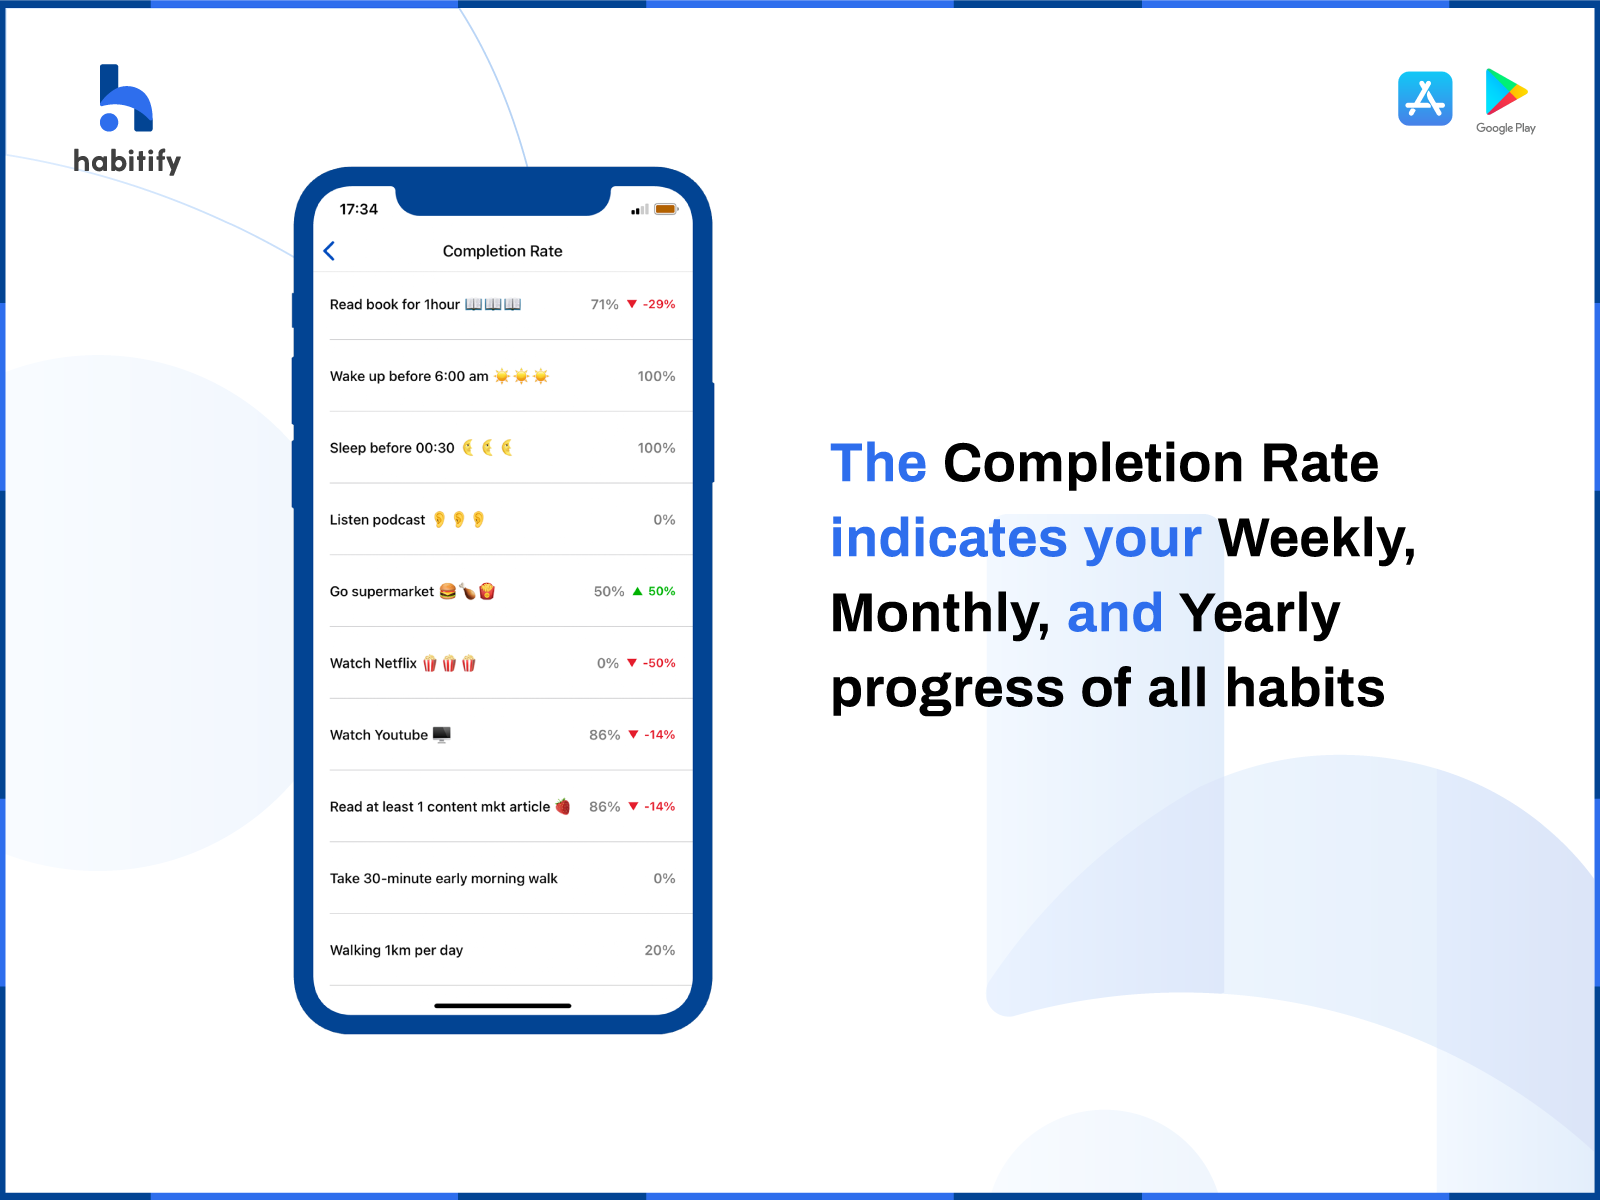 habit completion rate